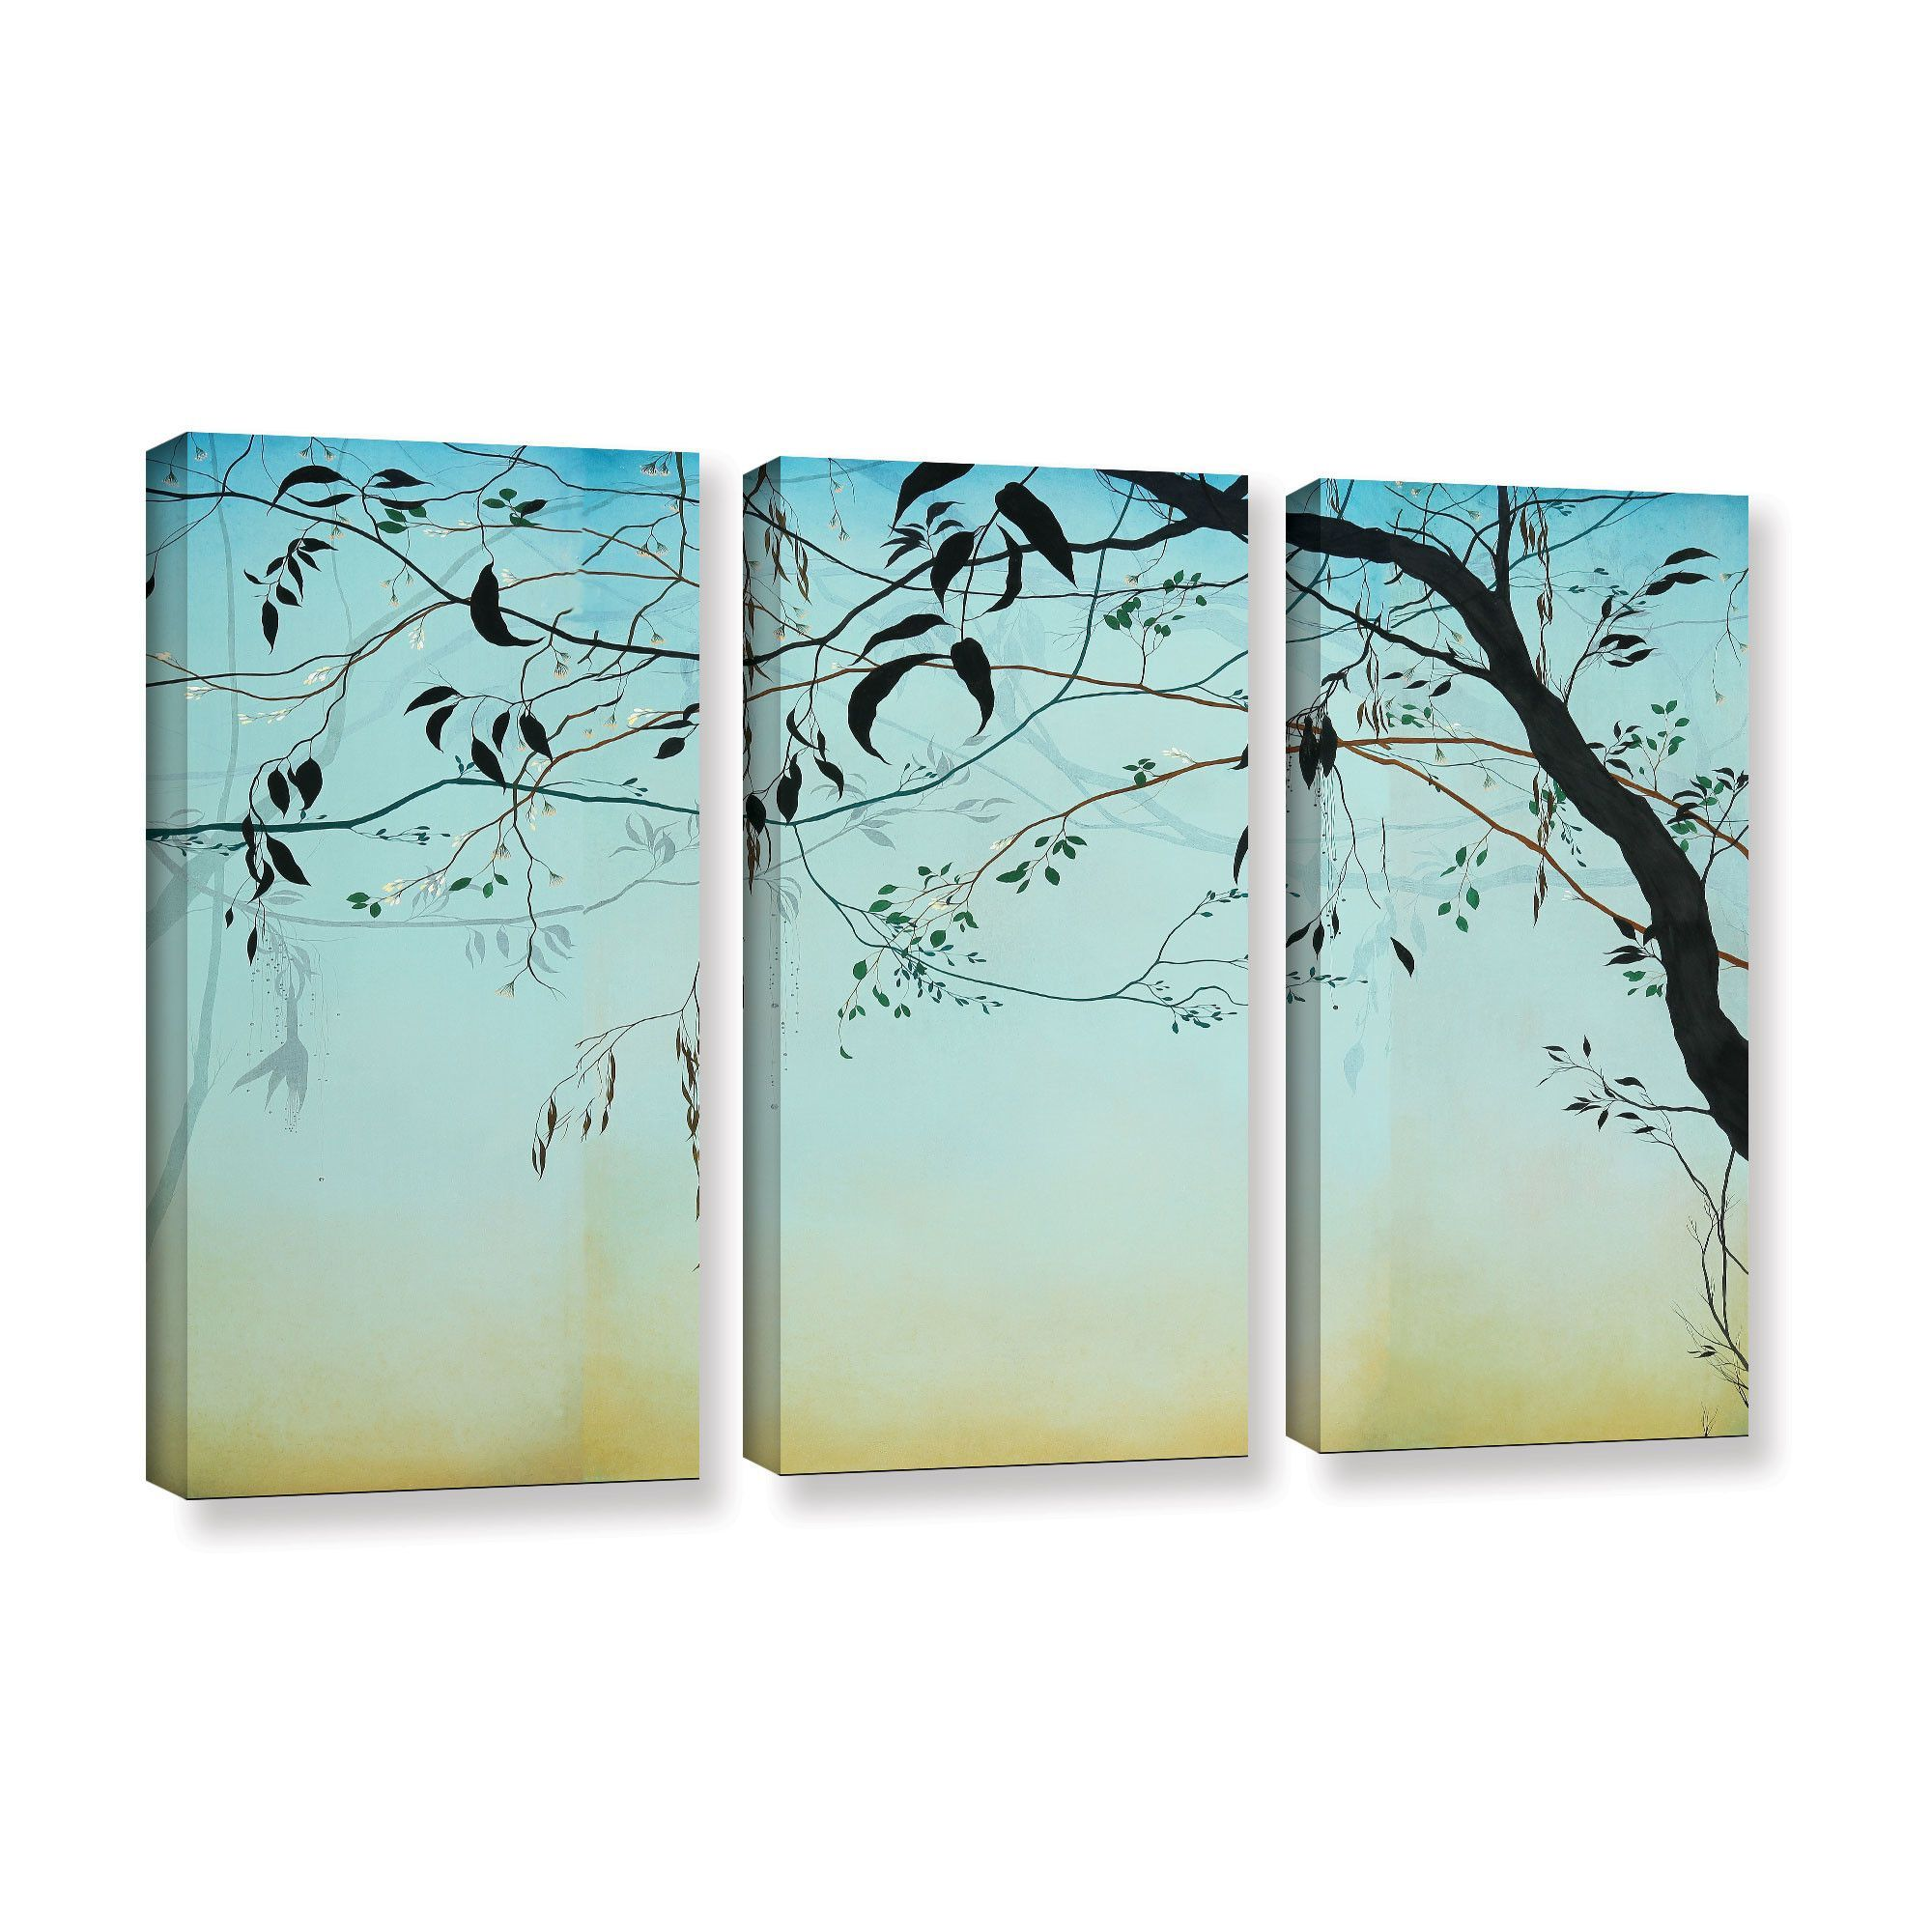 Ivy Jacobsen Blue Twilight 3 Piece Graphic Art on Wrapped Canvas